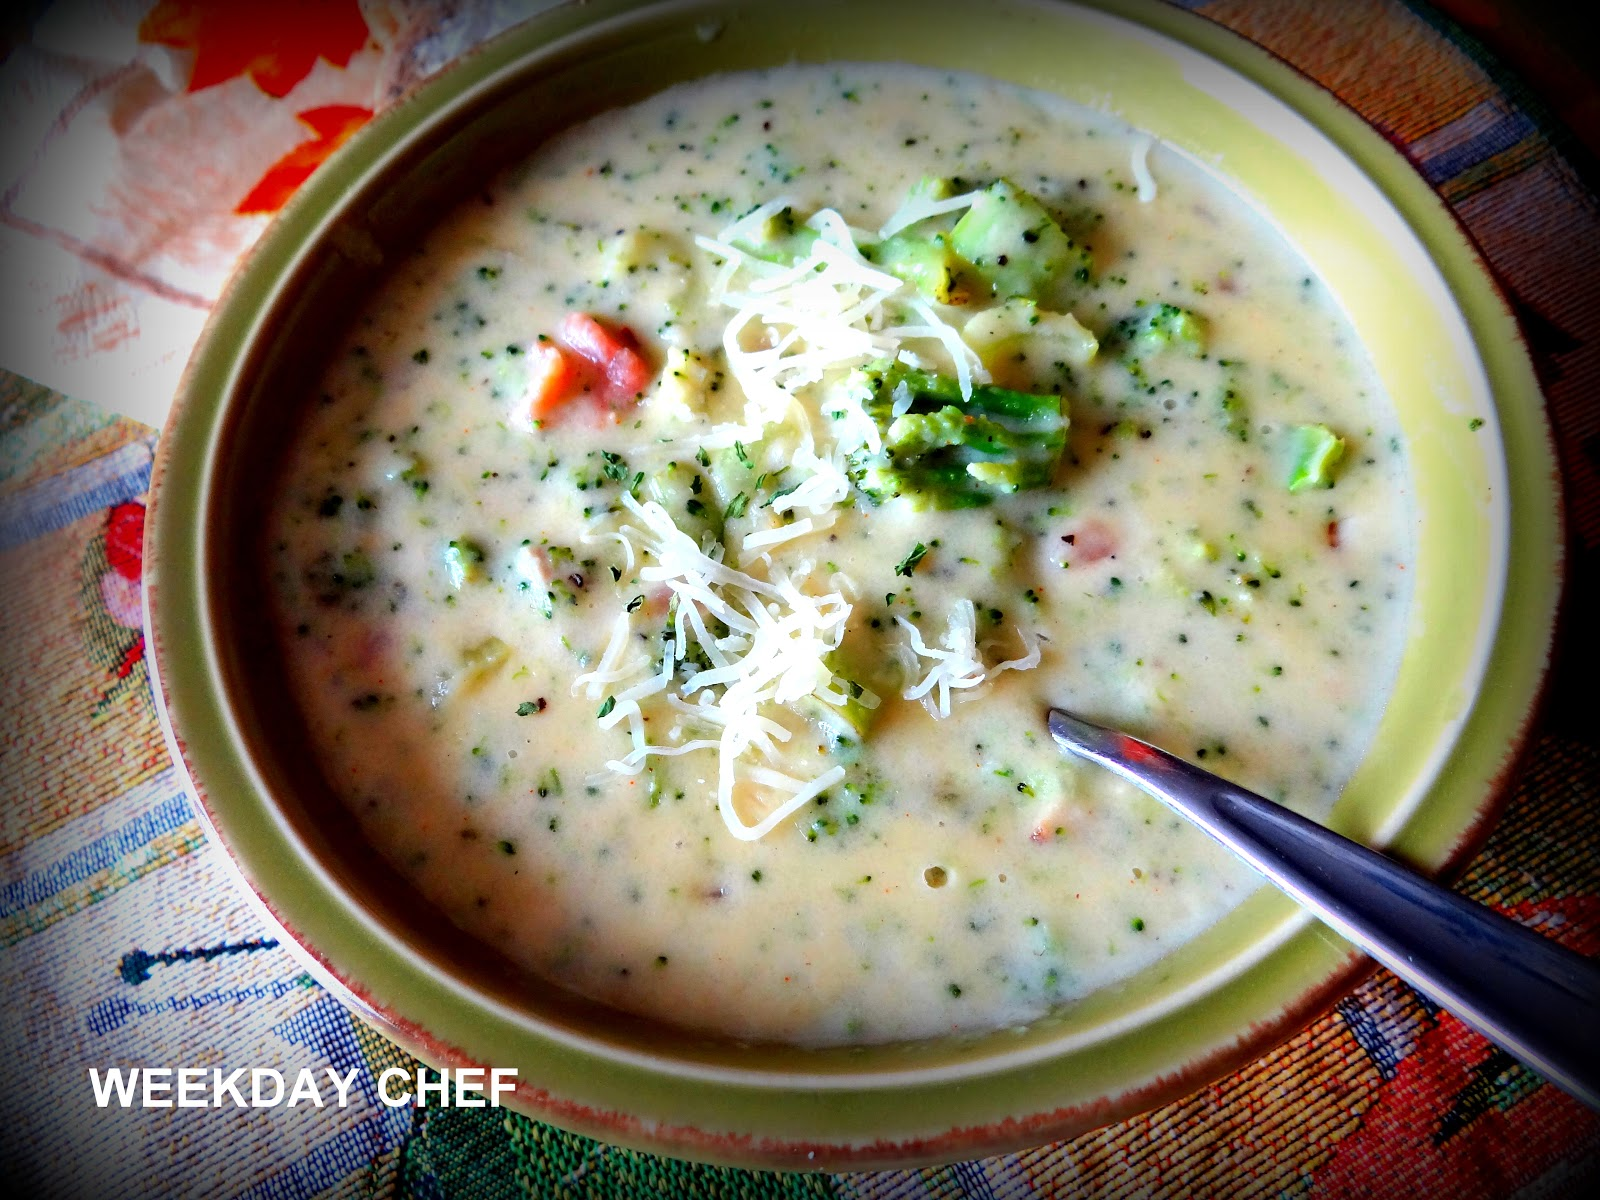 Weekday Chef: Cream of Broccoli Soup like Kneaders